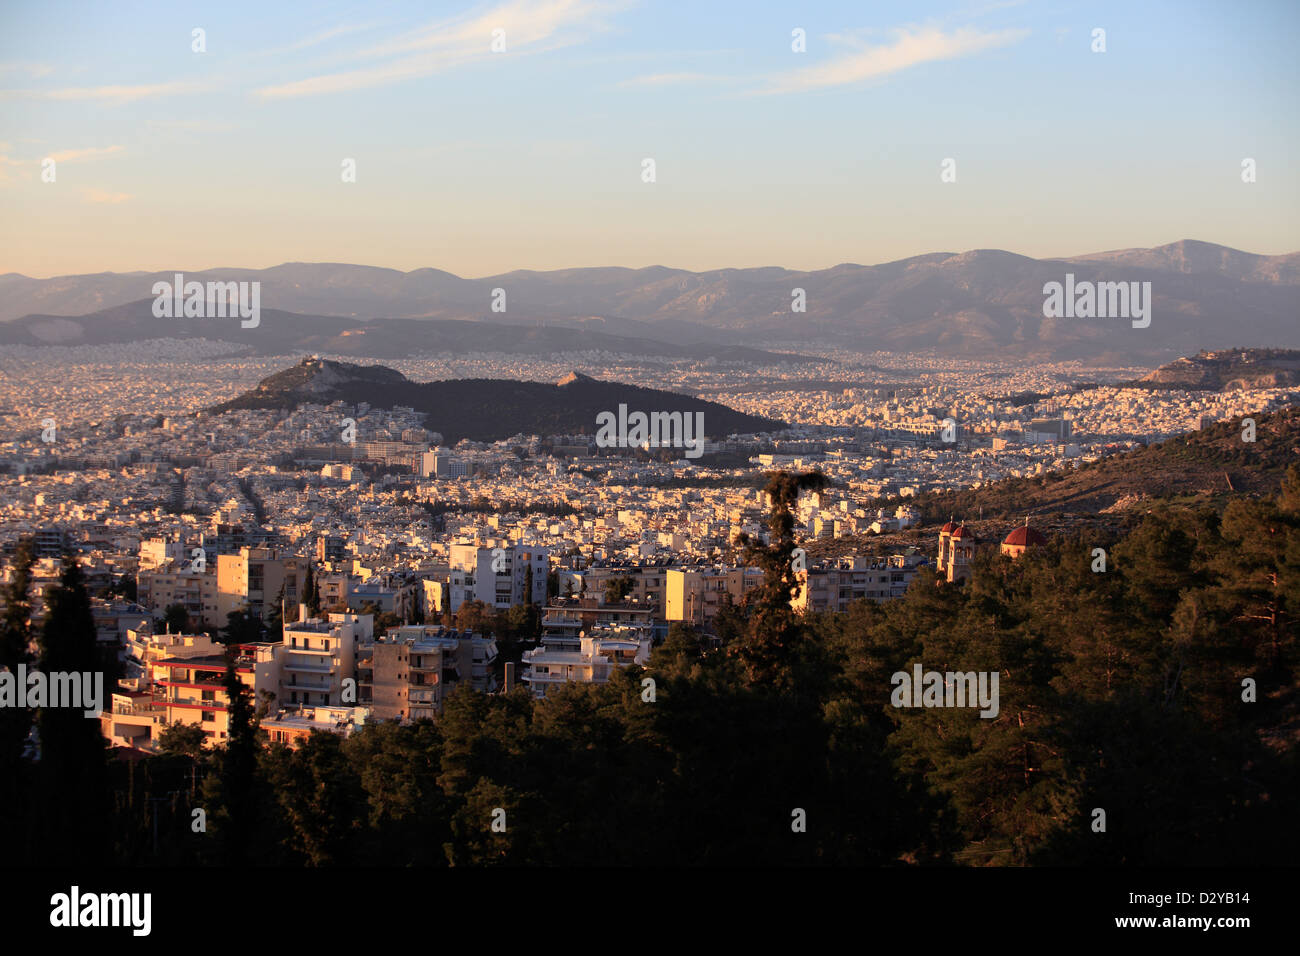 greece athens attica the view over the city from mount hymettus - Stock Image